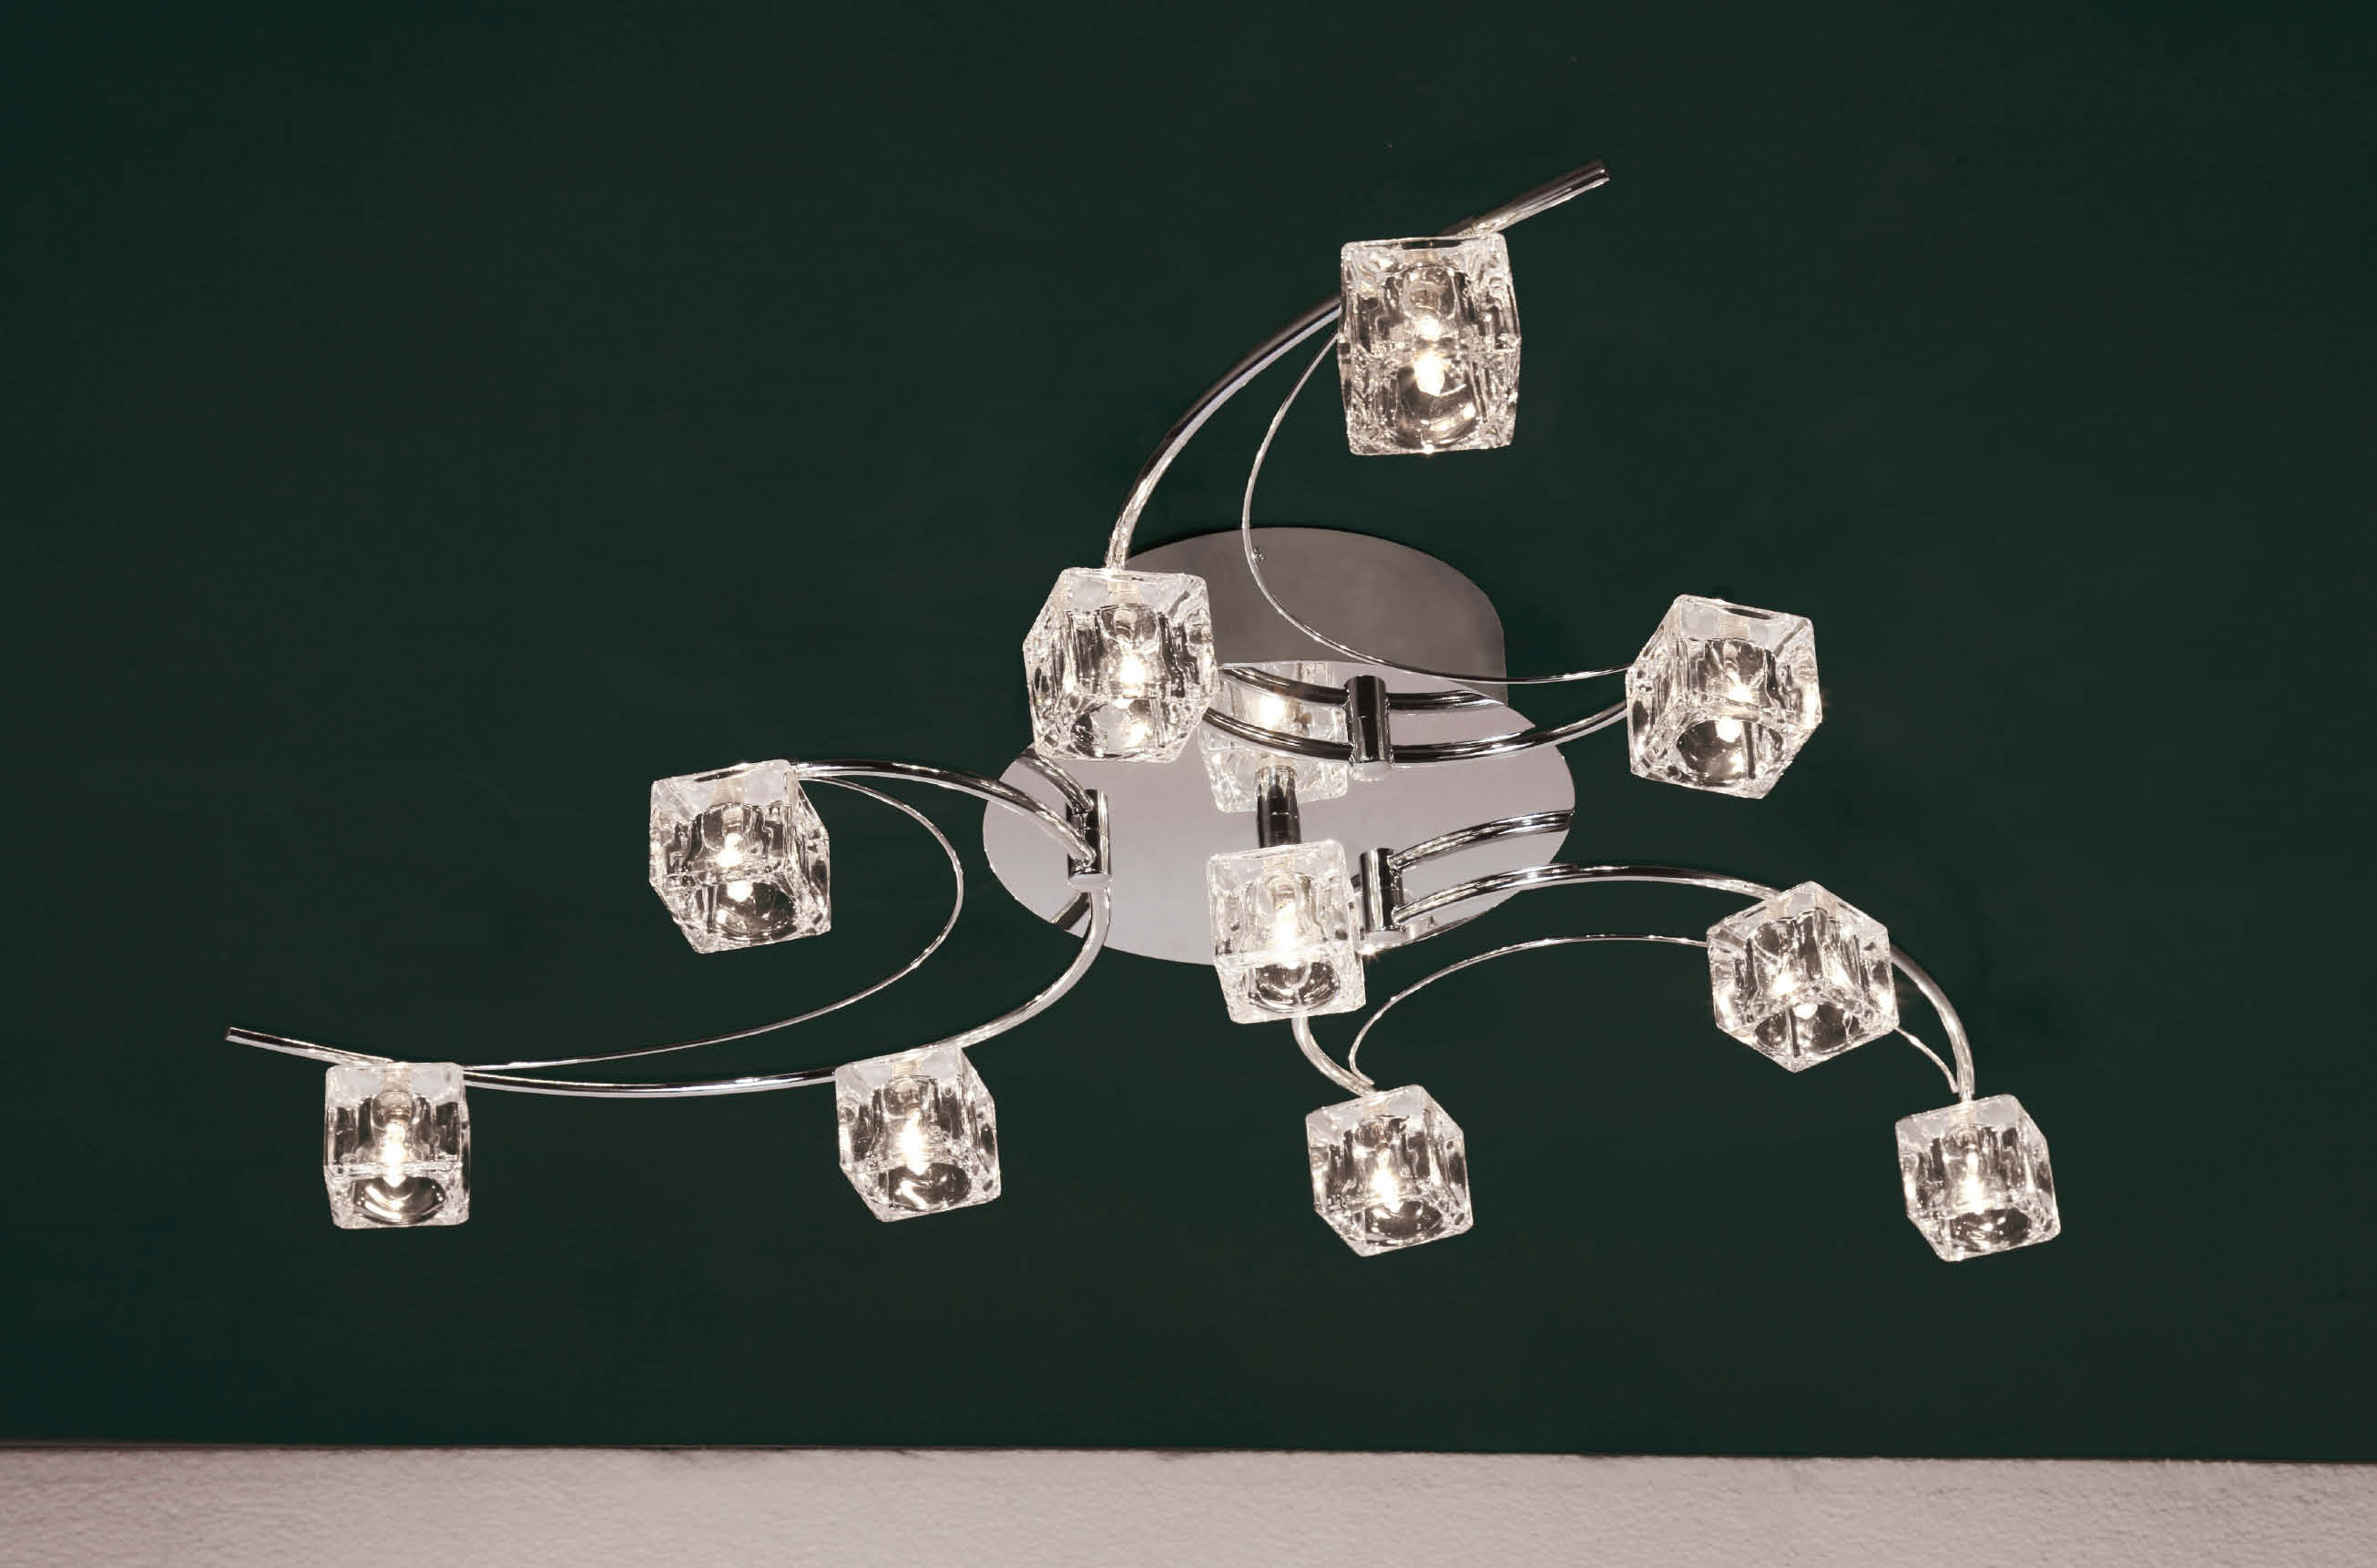 Plafonnier Design Style Vertigo Plafonnier Vertigo Lampe Suspension Led Lustre Chrome